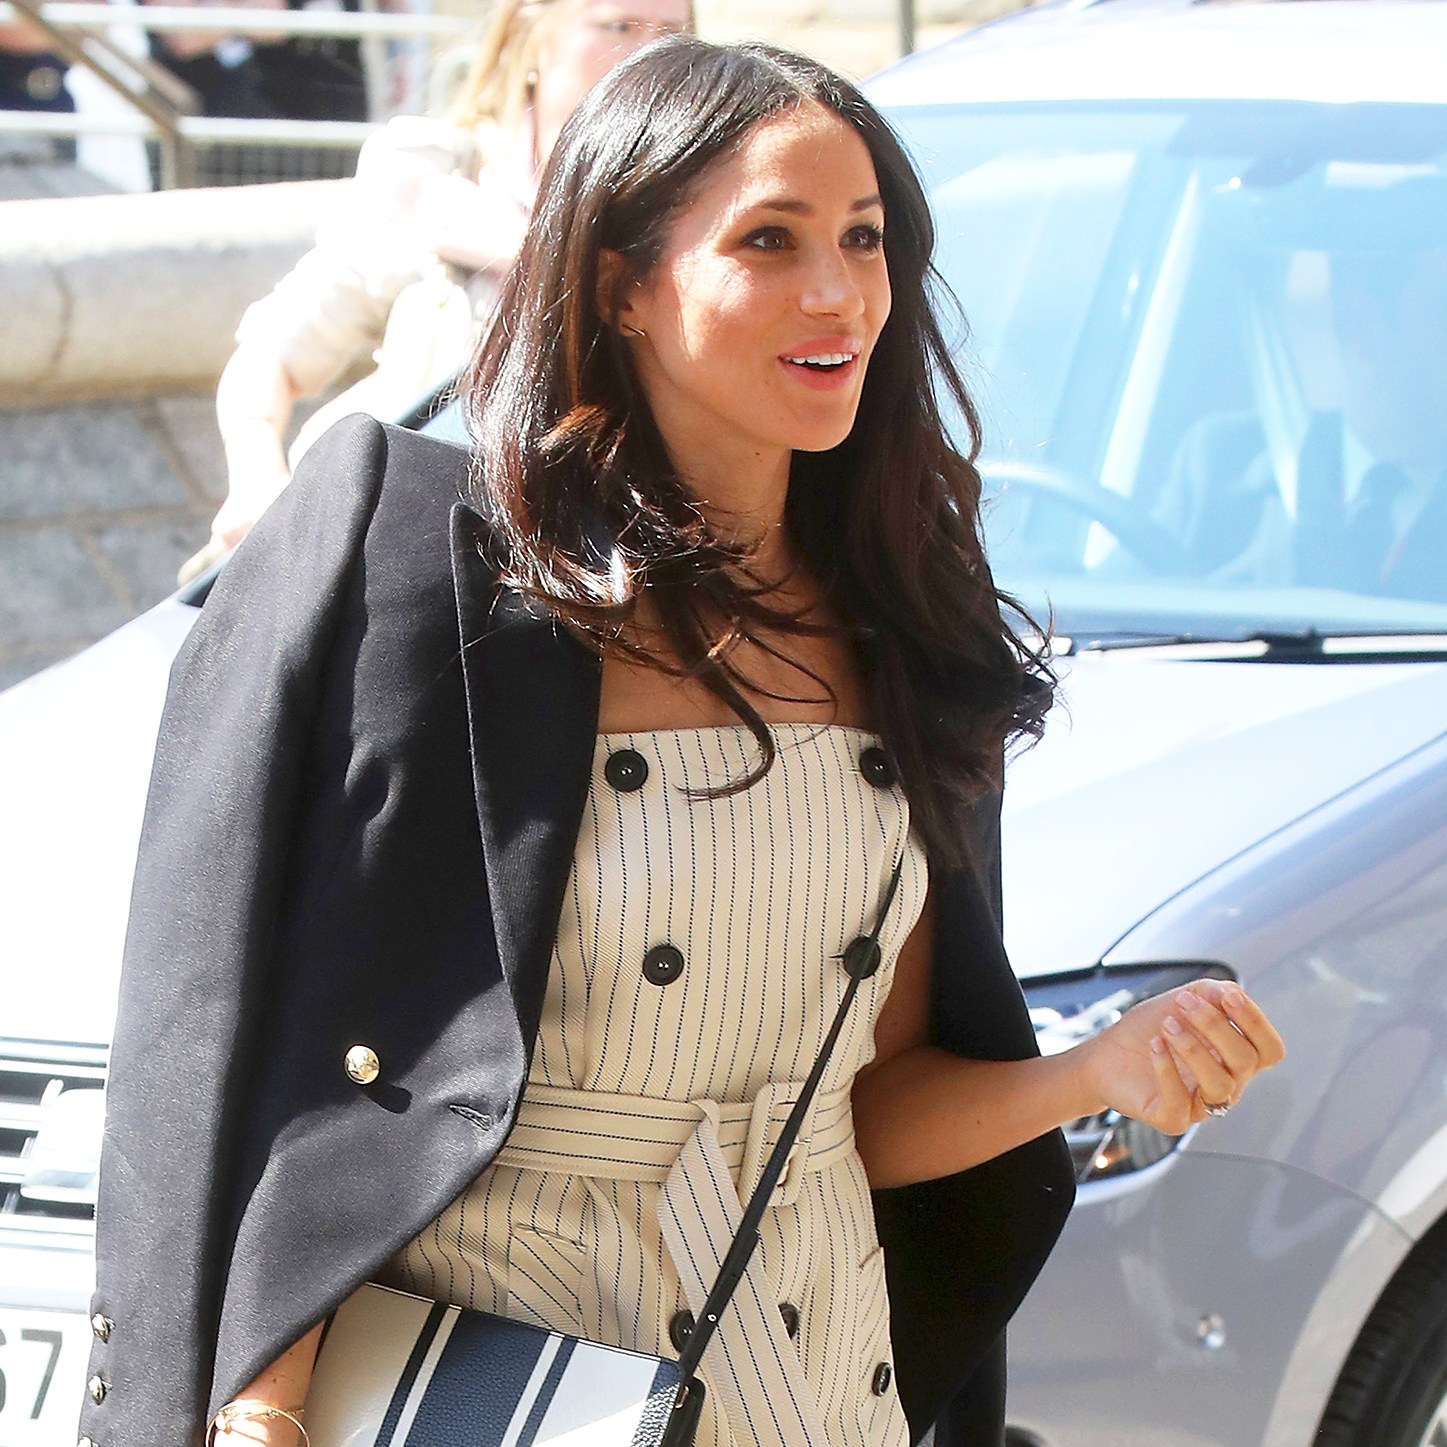 Meghan Markle arrive to attend a reception with delegates from the Commonwealth Youth Forum in central London on April 18, 2017.